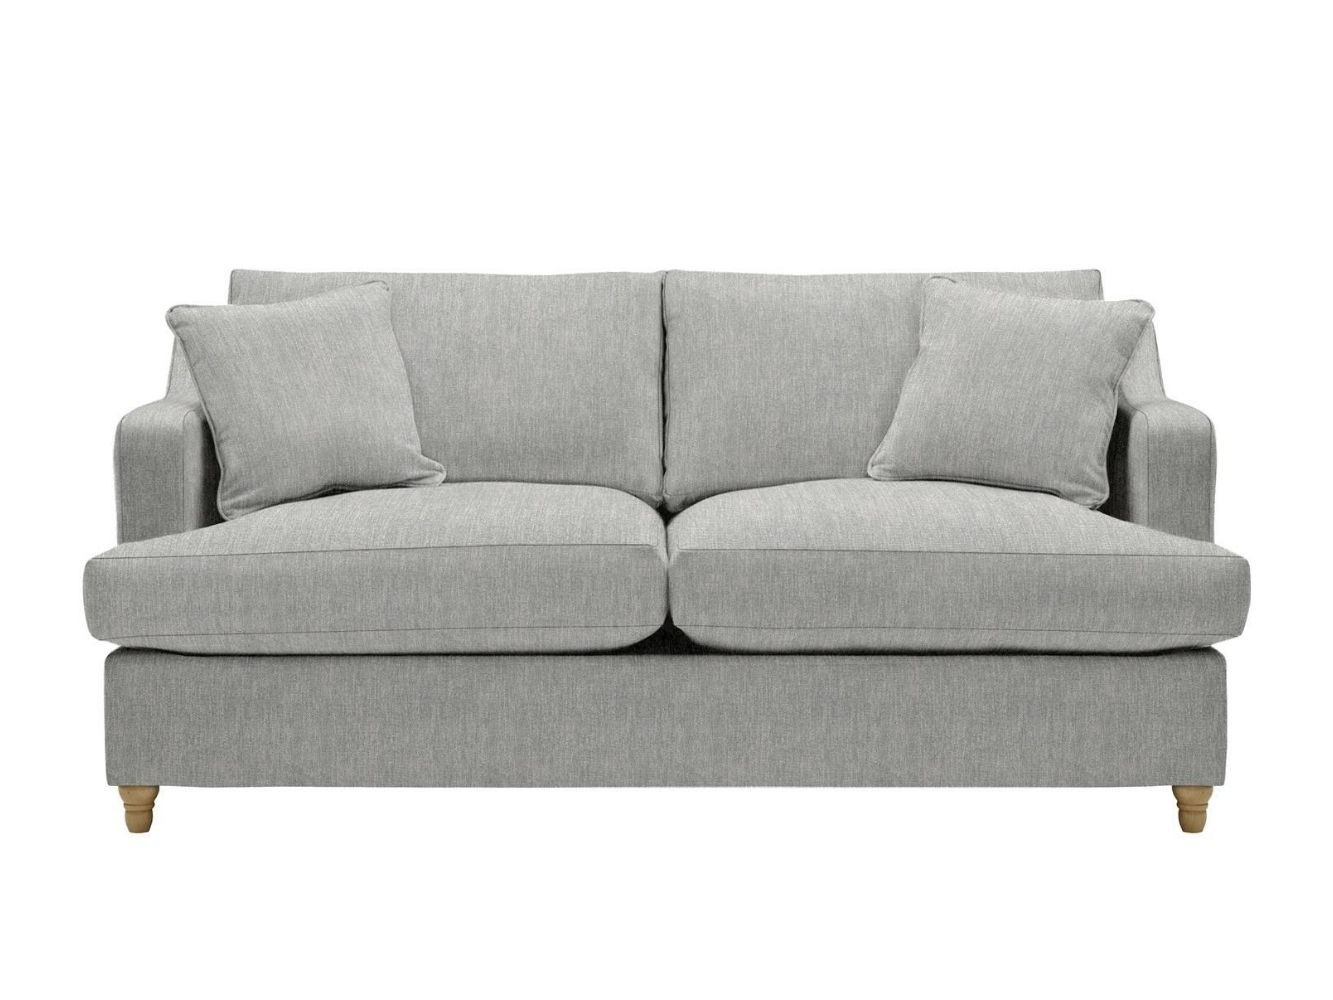 This is how I look in Stain Resistant Broad Weave Linen Silver with siliconized hollow fibre seat cushions